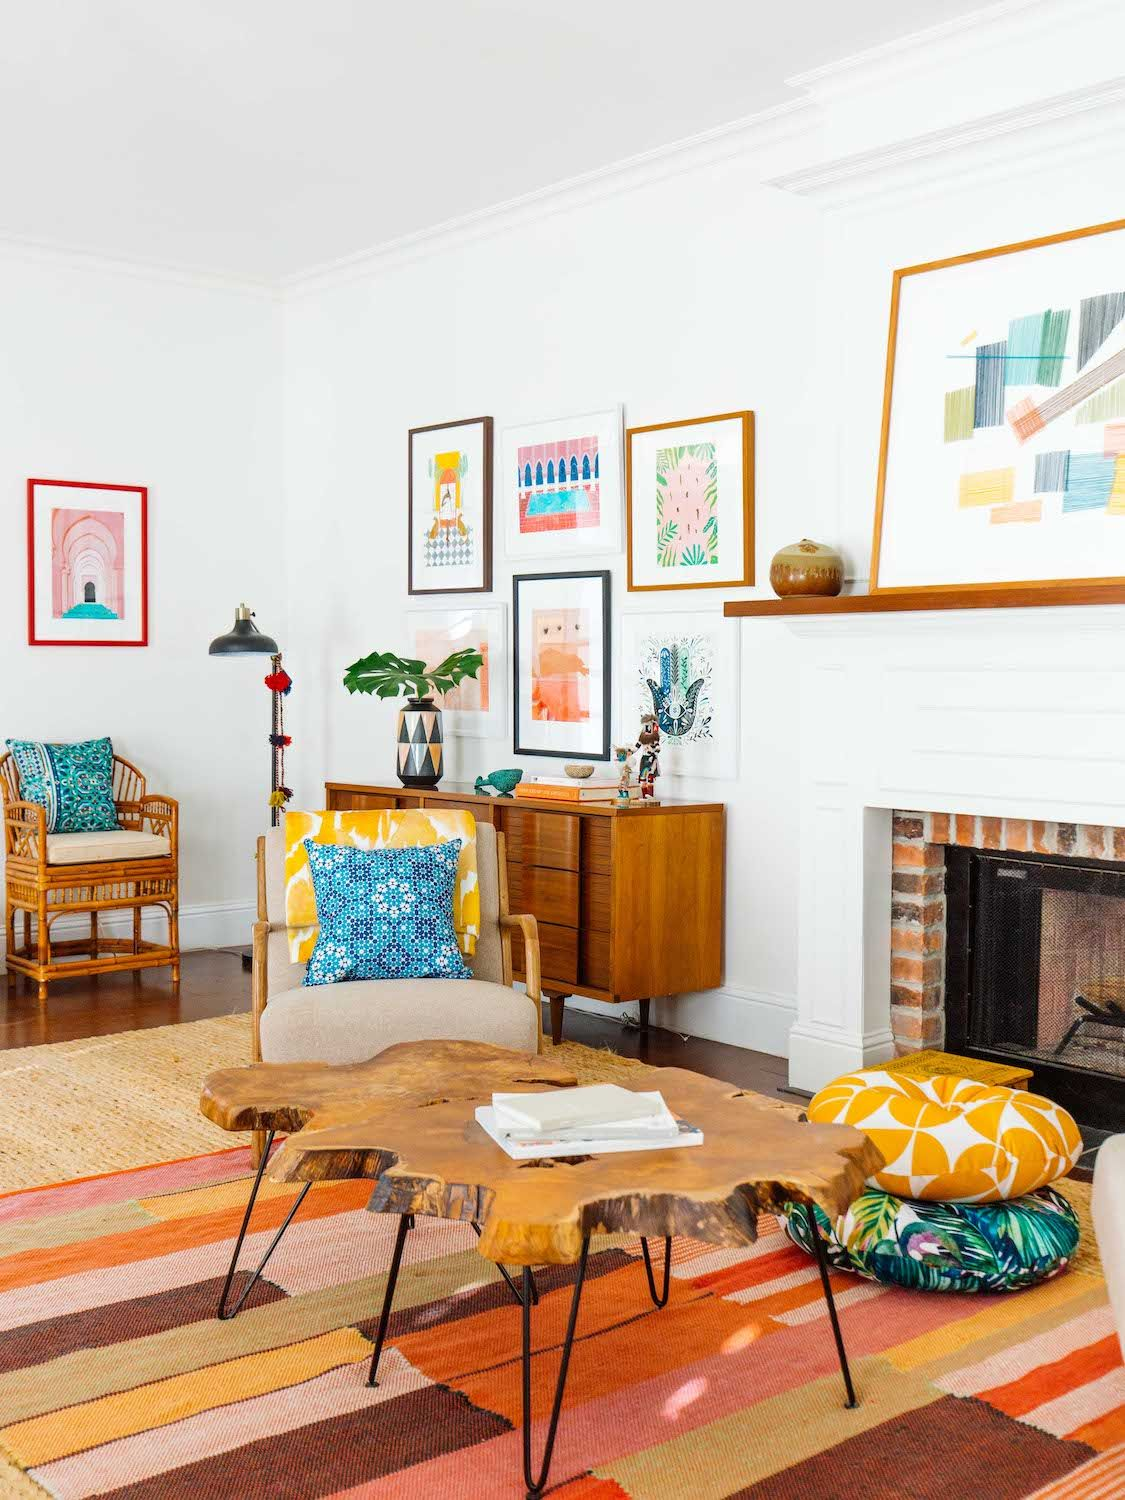 Inspired by marrakech 5 ways to bring bold moroccan style - Moroccan living room ideas pinterest ...